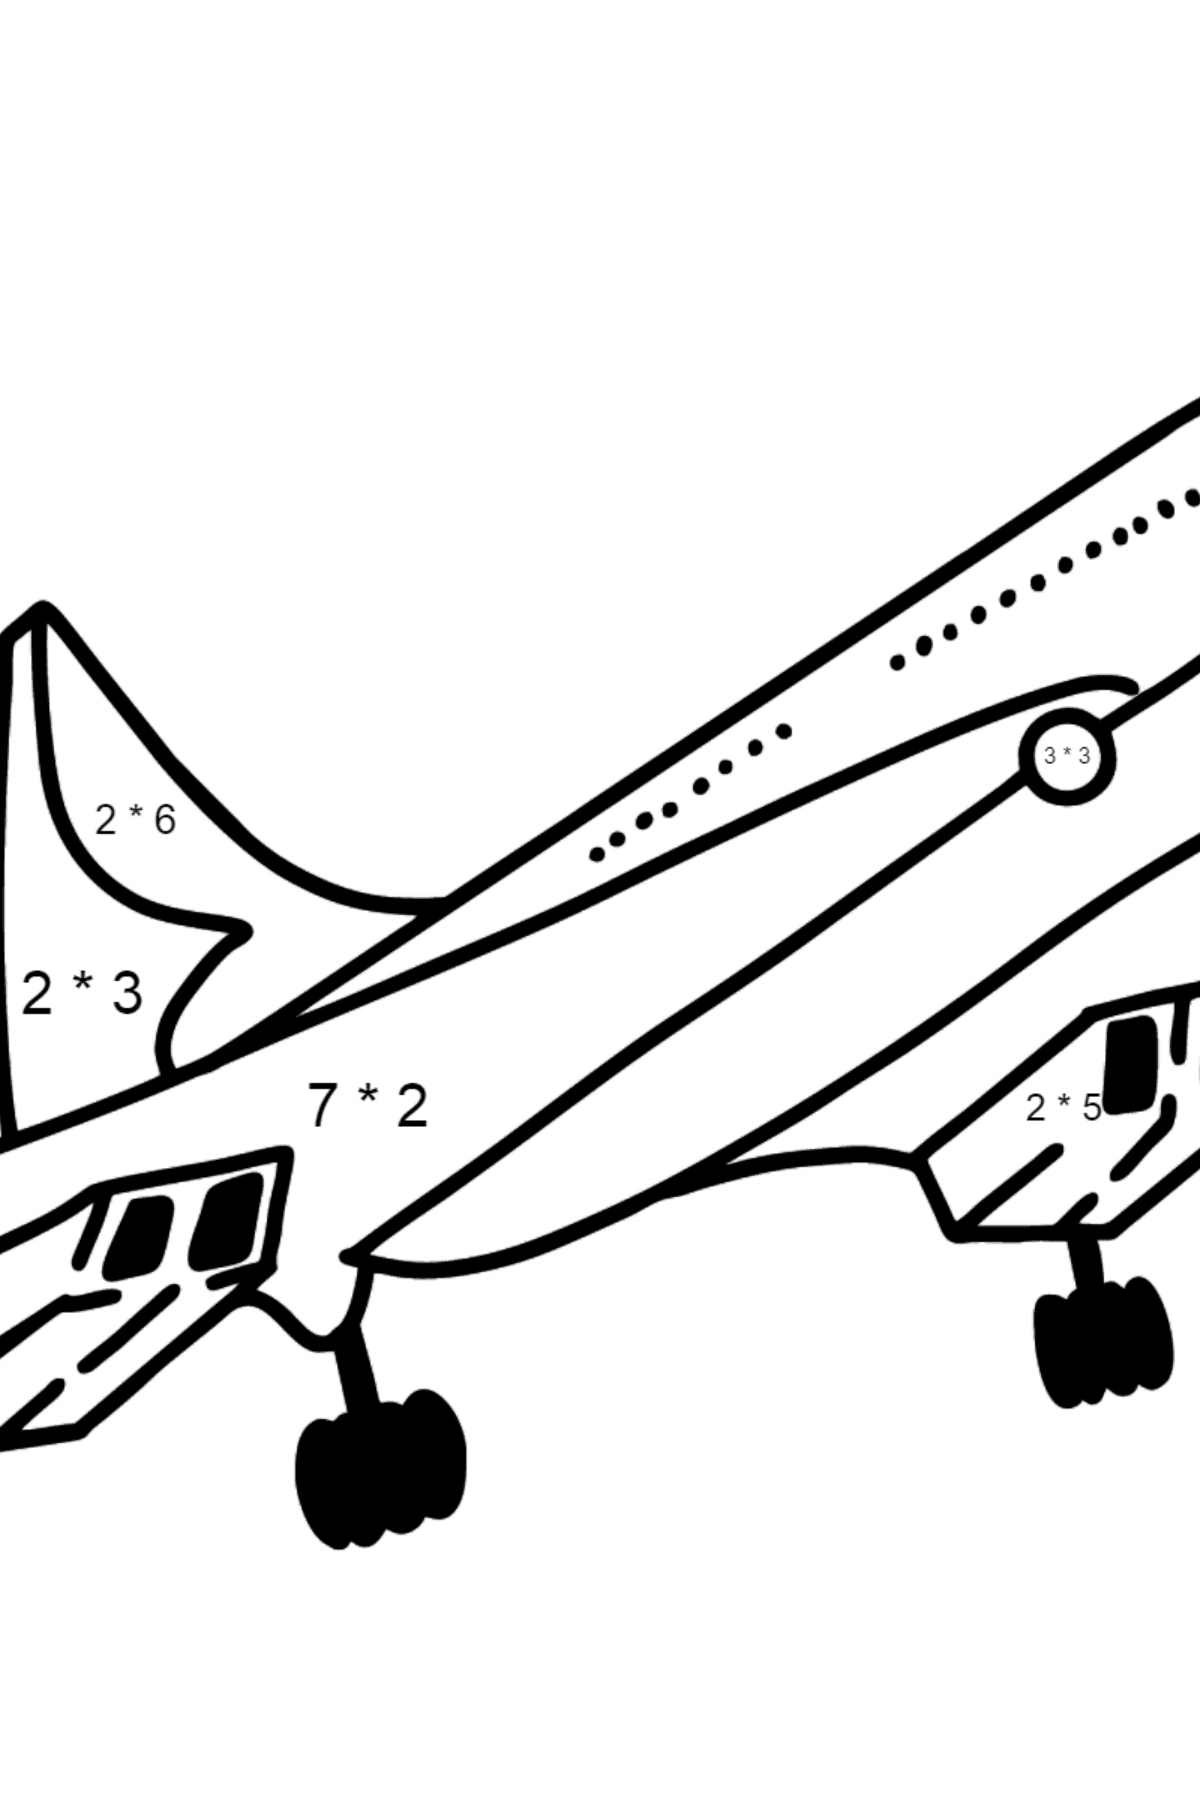 Concorde coloring page - Math Coloring - Multiplication for Kids